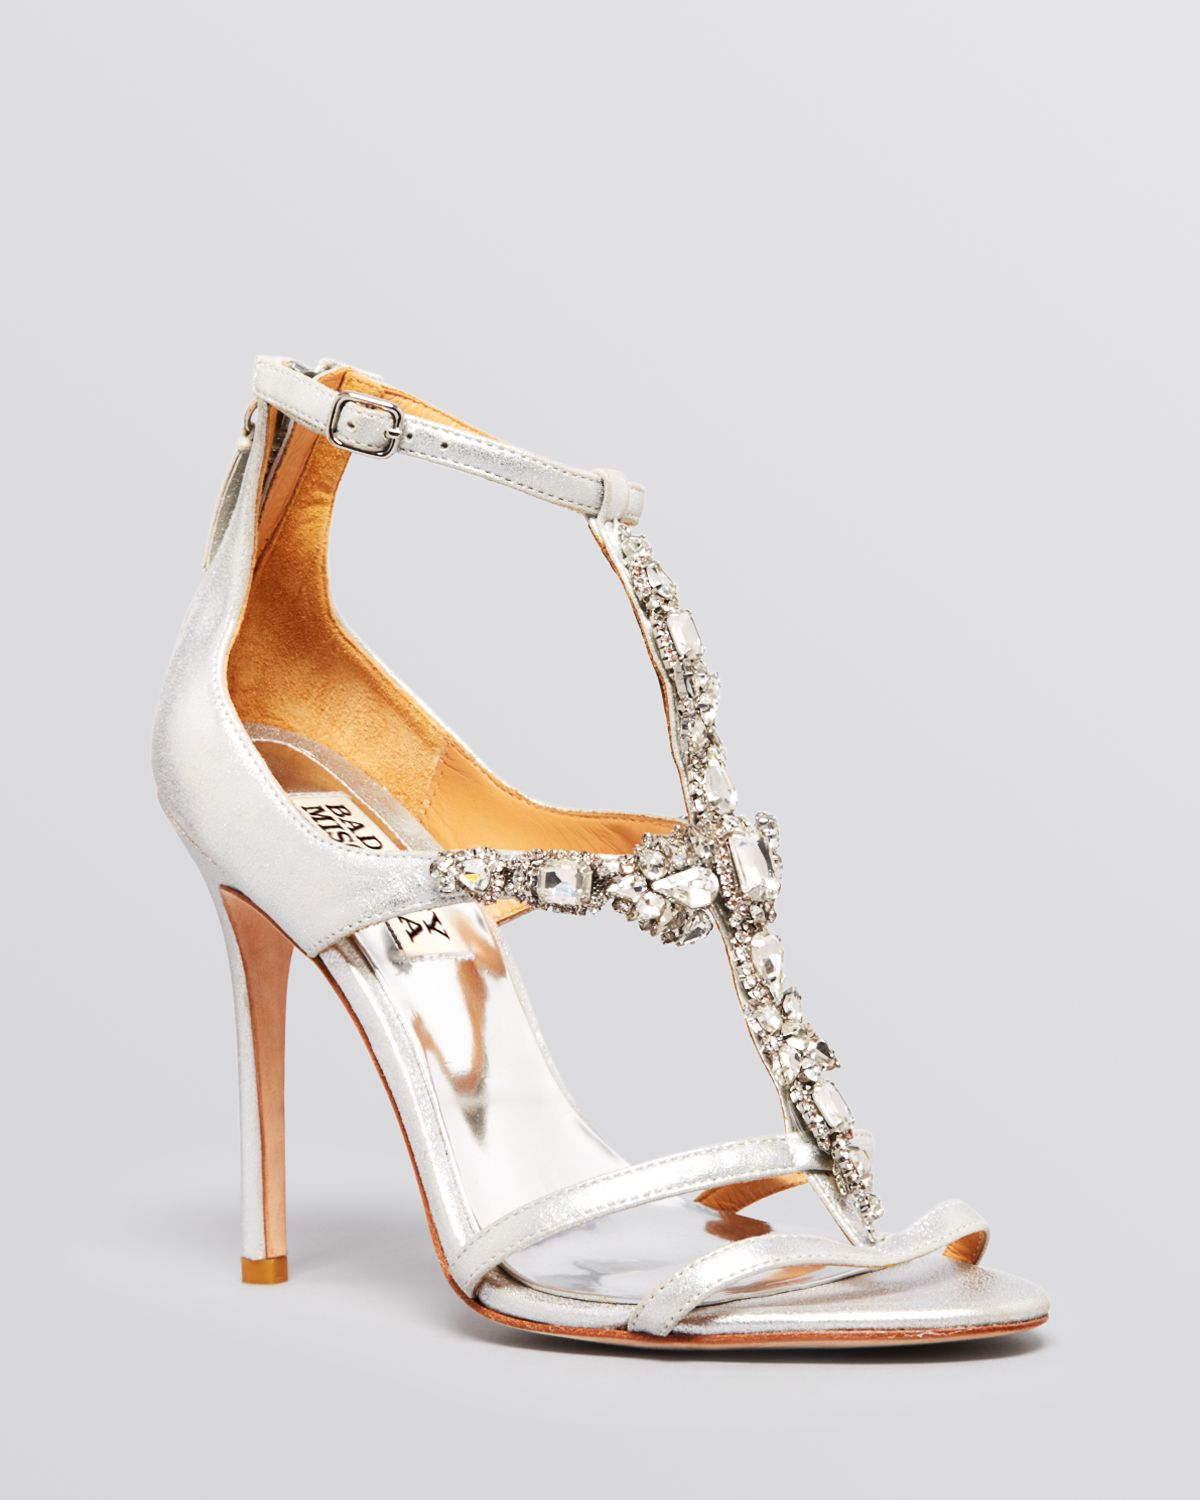 Badgley mischka Open Toe Evening Sandals Giovana Ii High Heel in